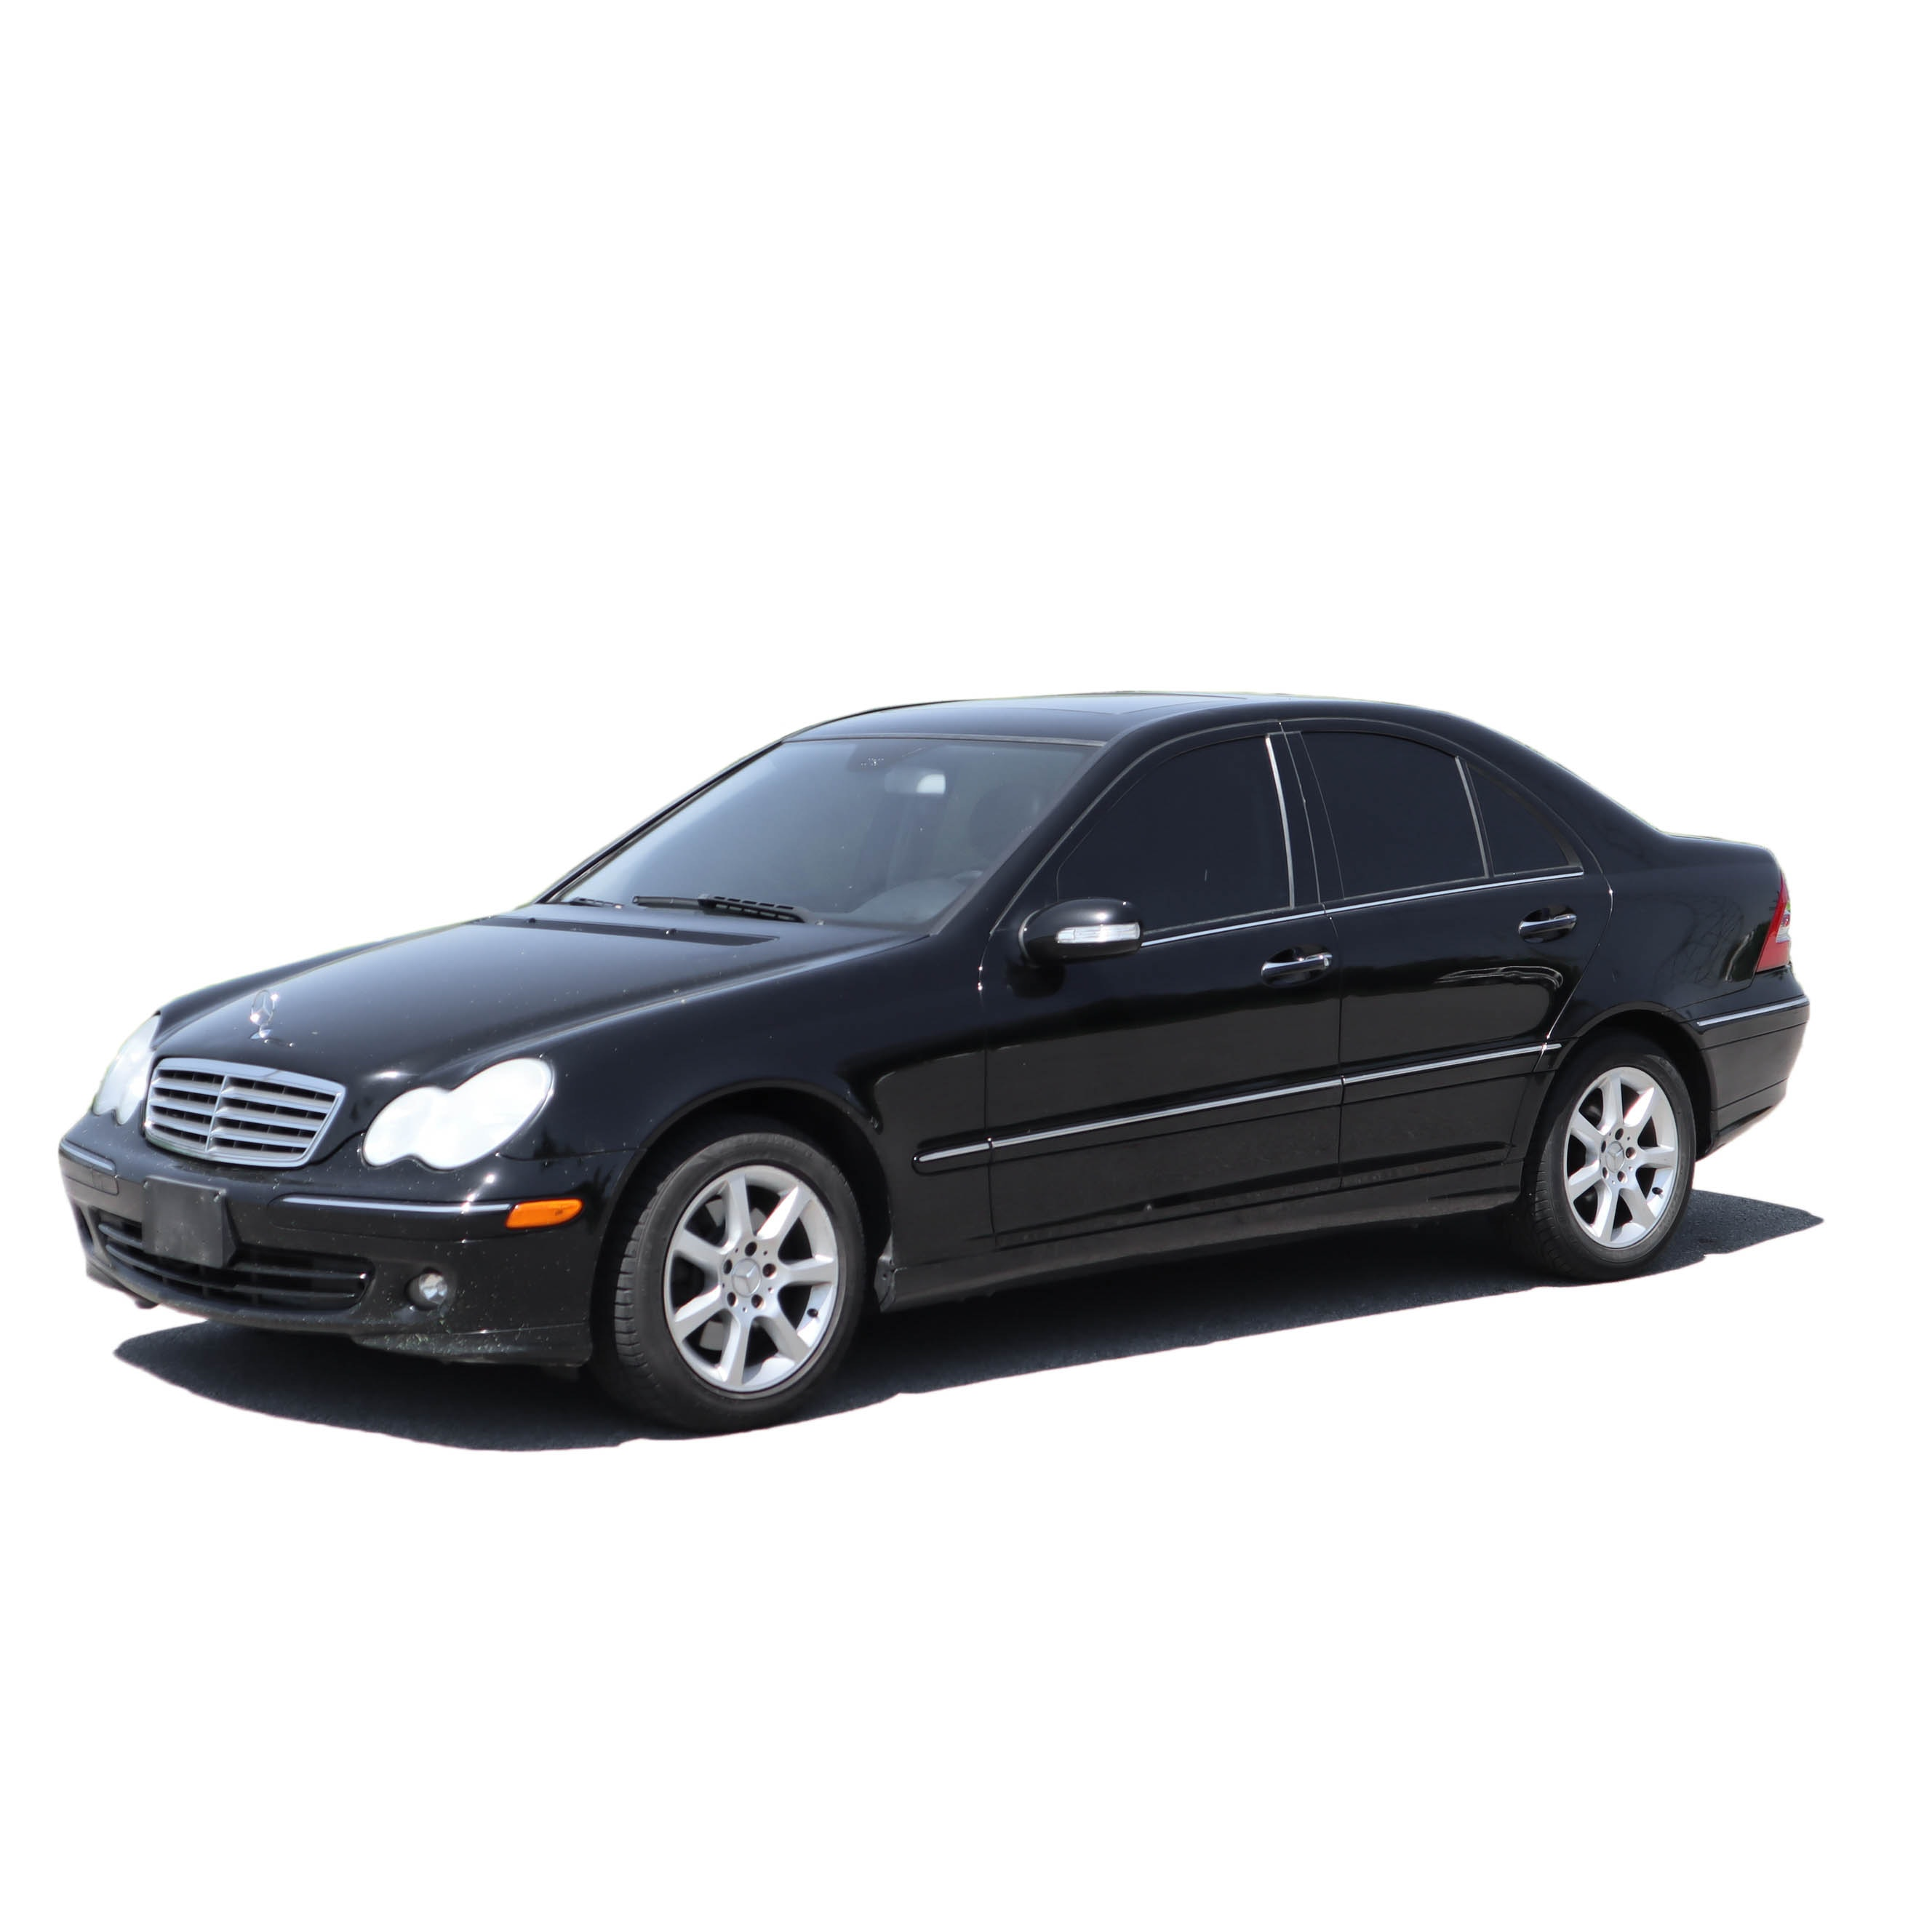 2007 Mercedes-Benz C-Class C280 Luxury Sedan 4Matic in Black